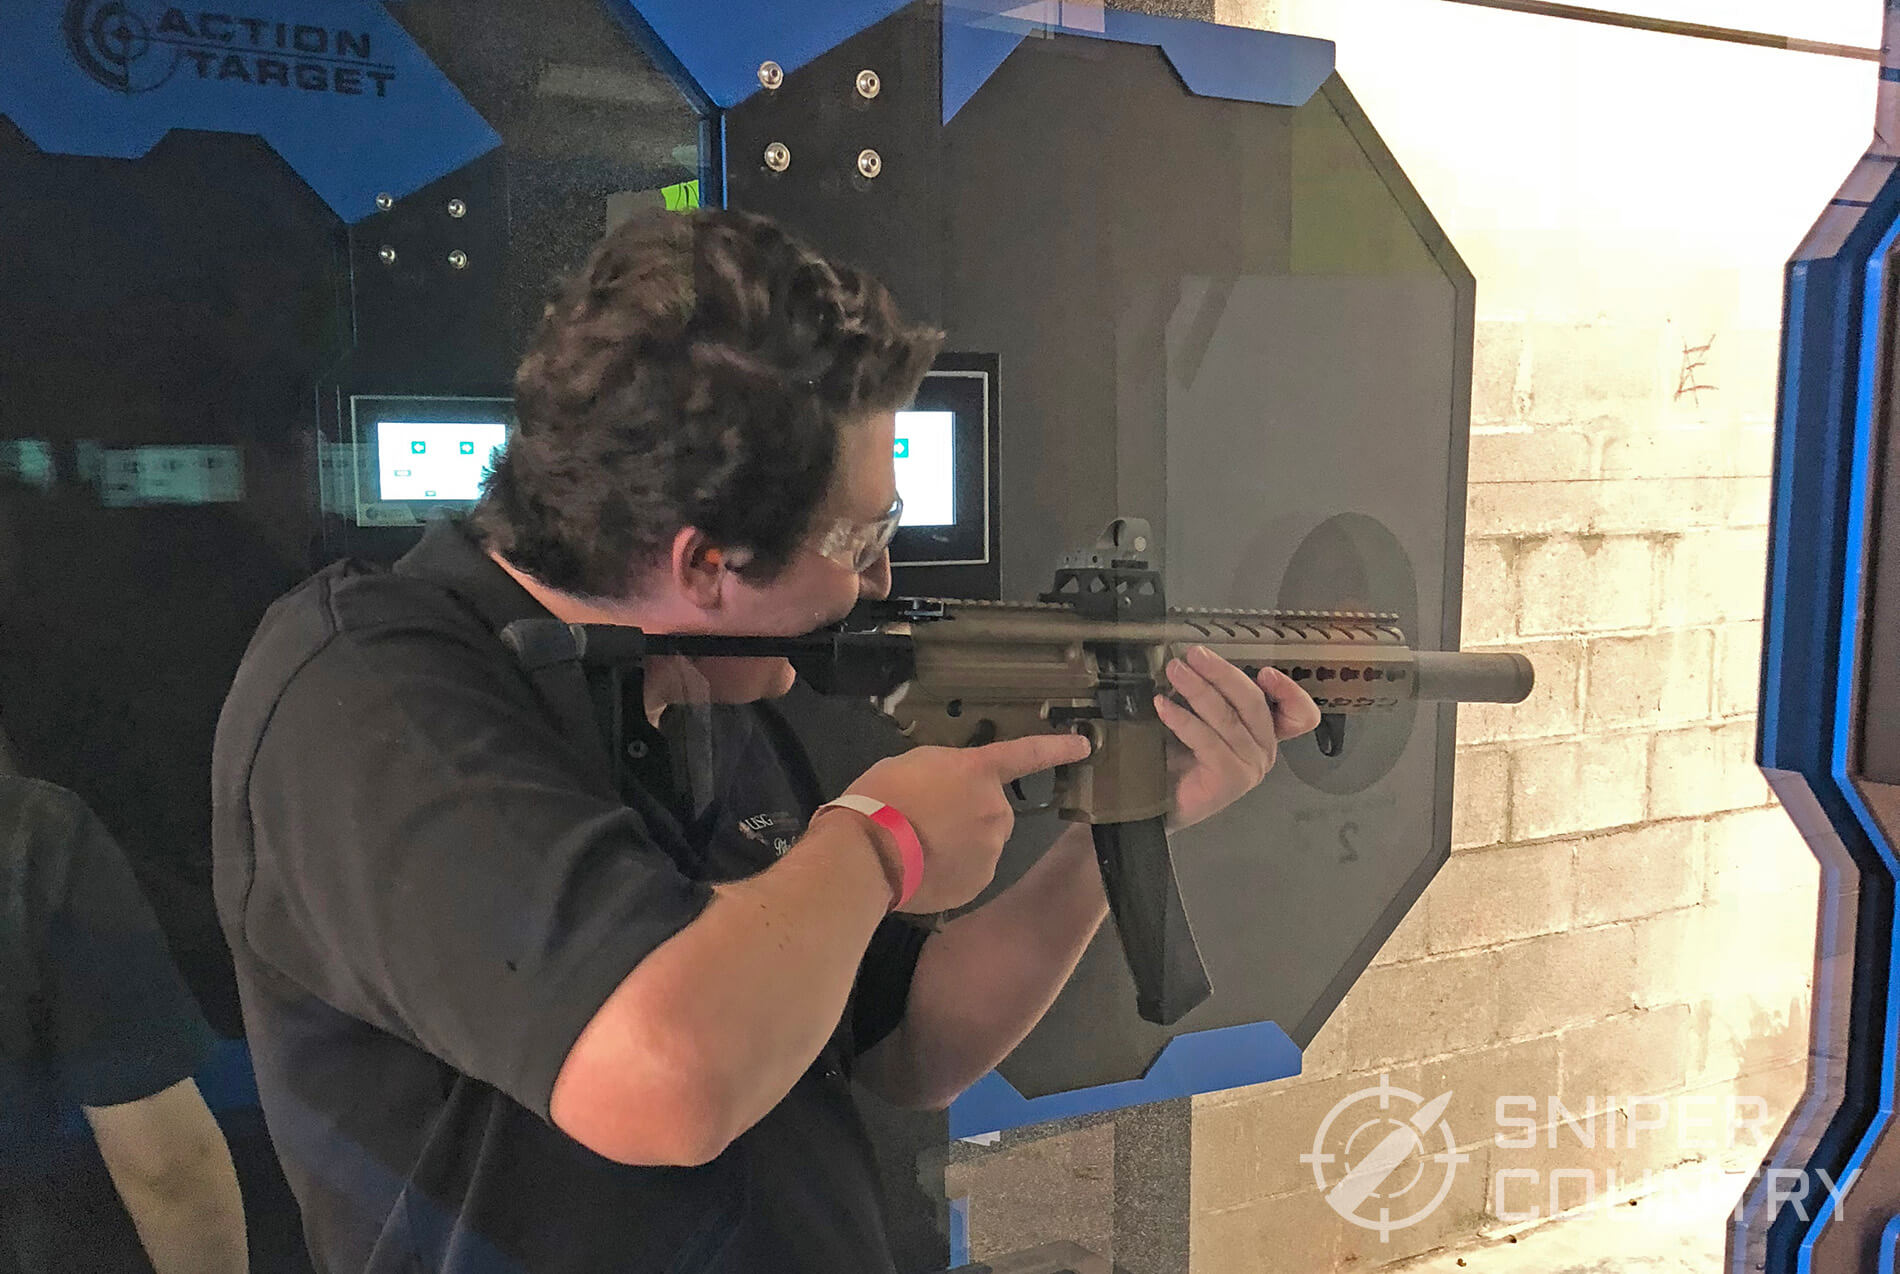 SIG MPX 9mm carbine shooting on the range